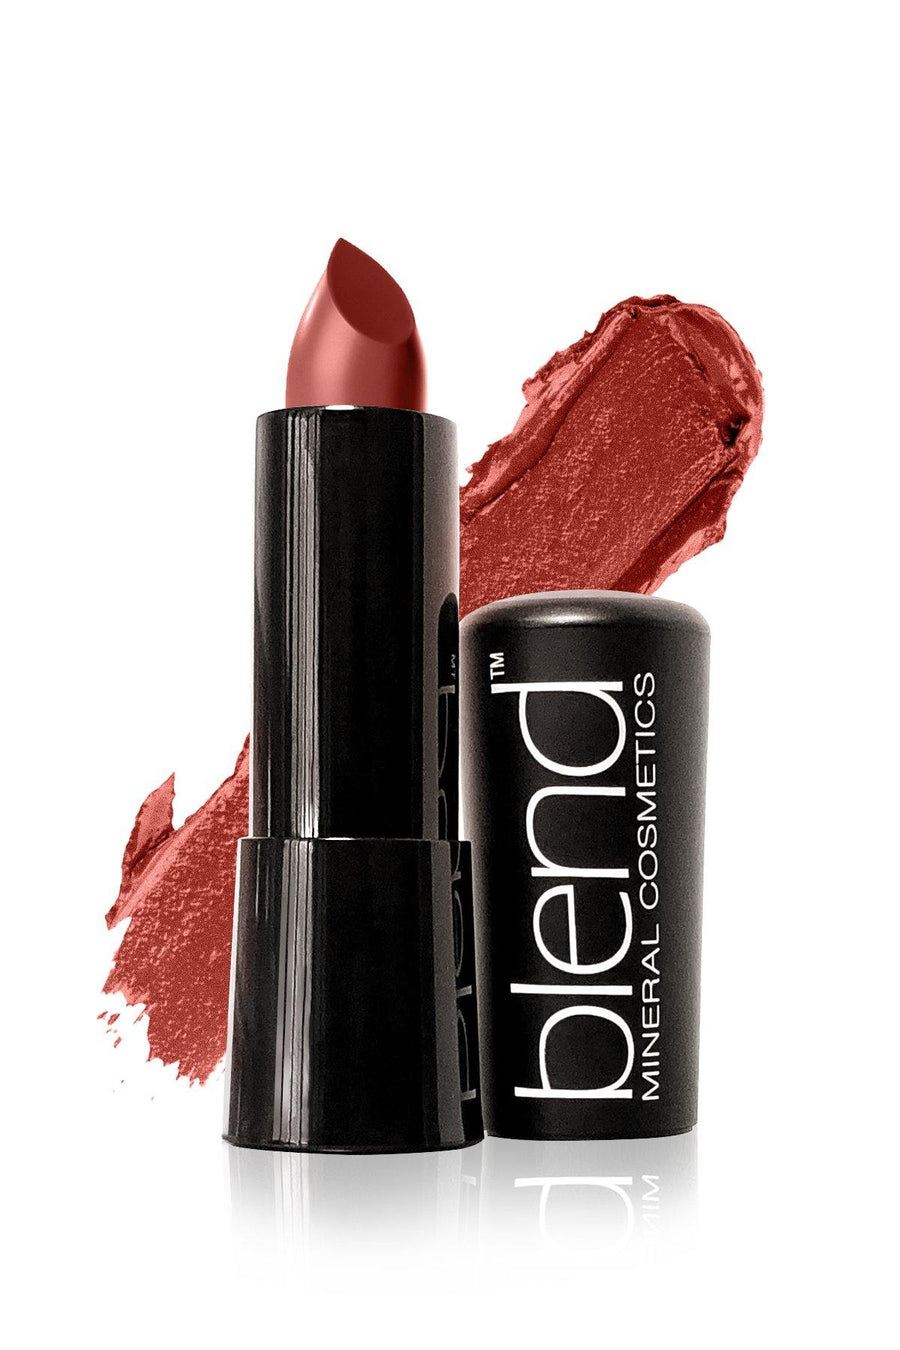 Lipstick #10 - Deep Brown Red